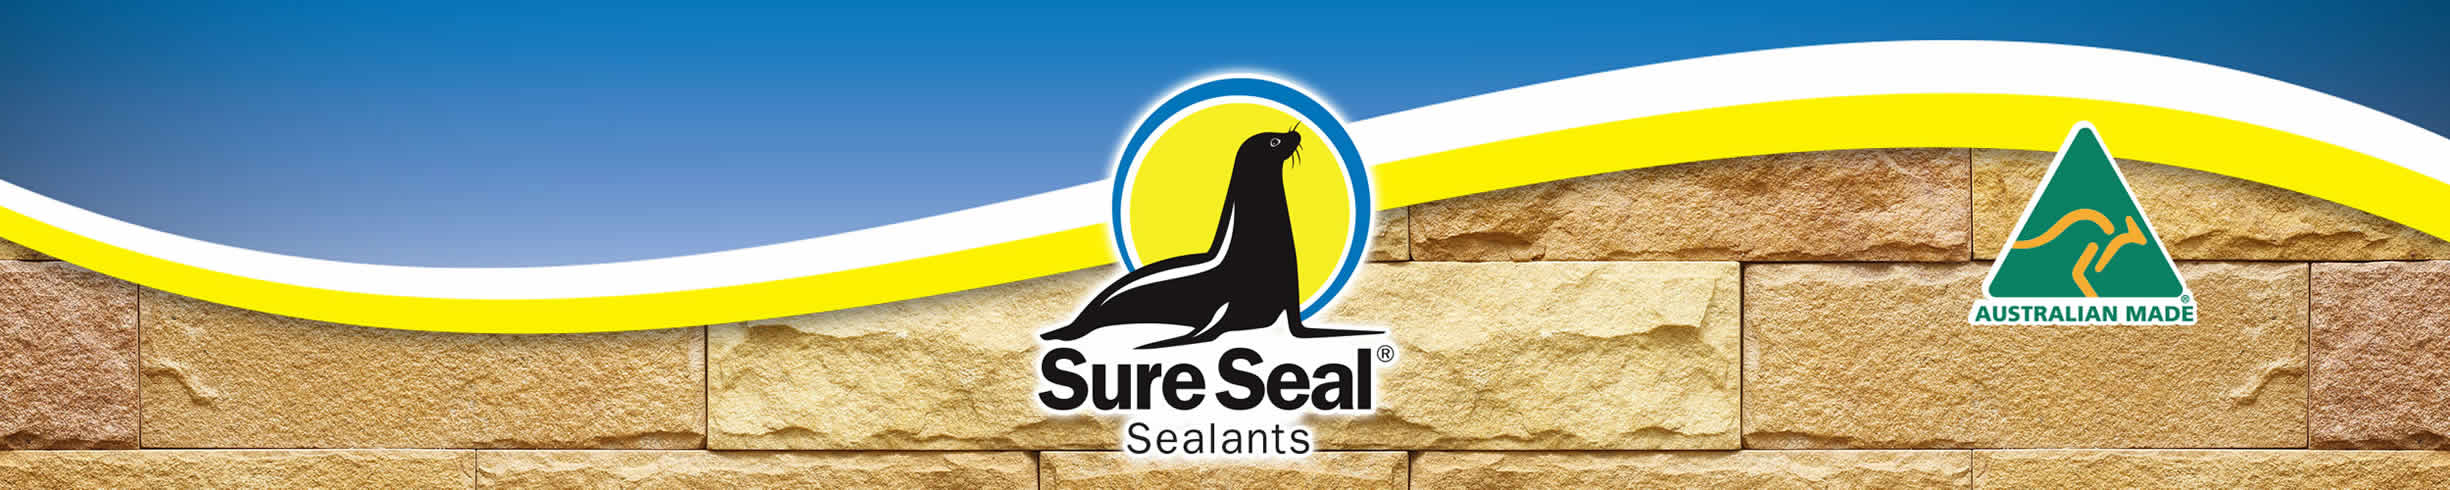 Sure Seal Sealants